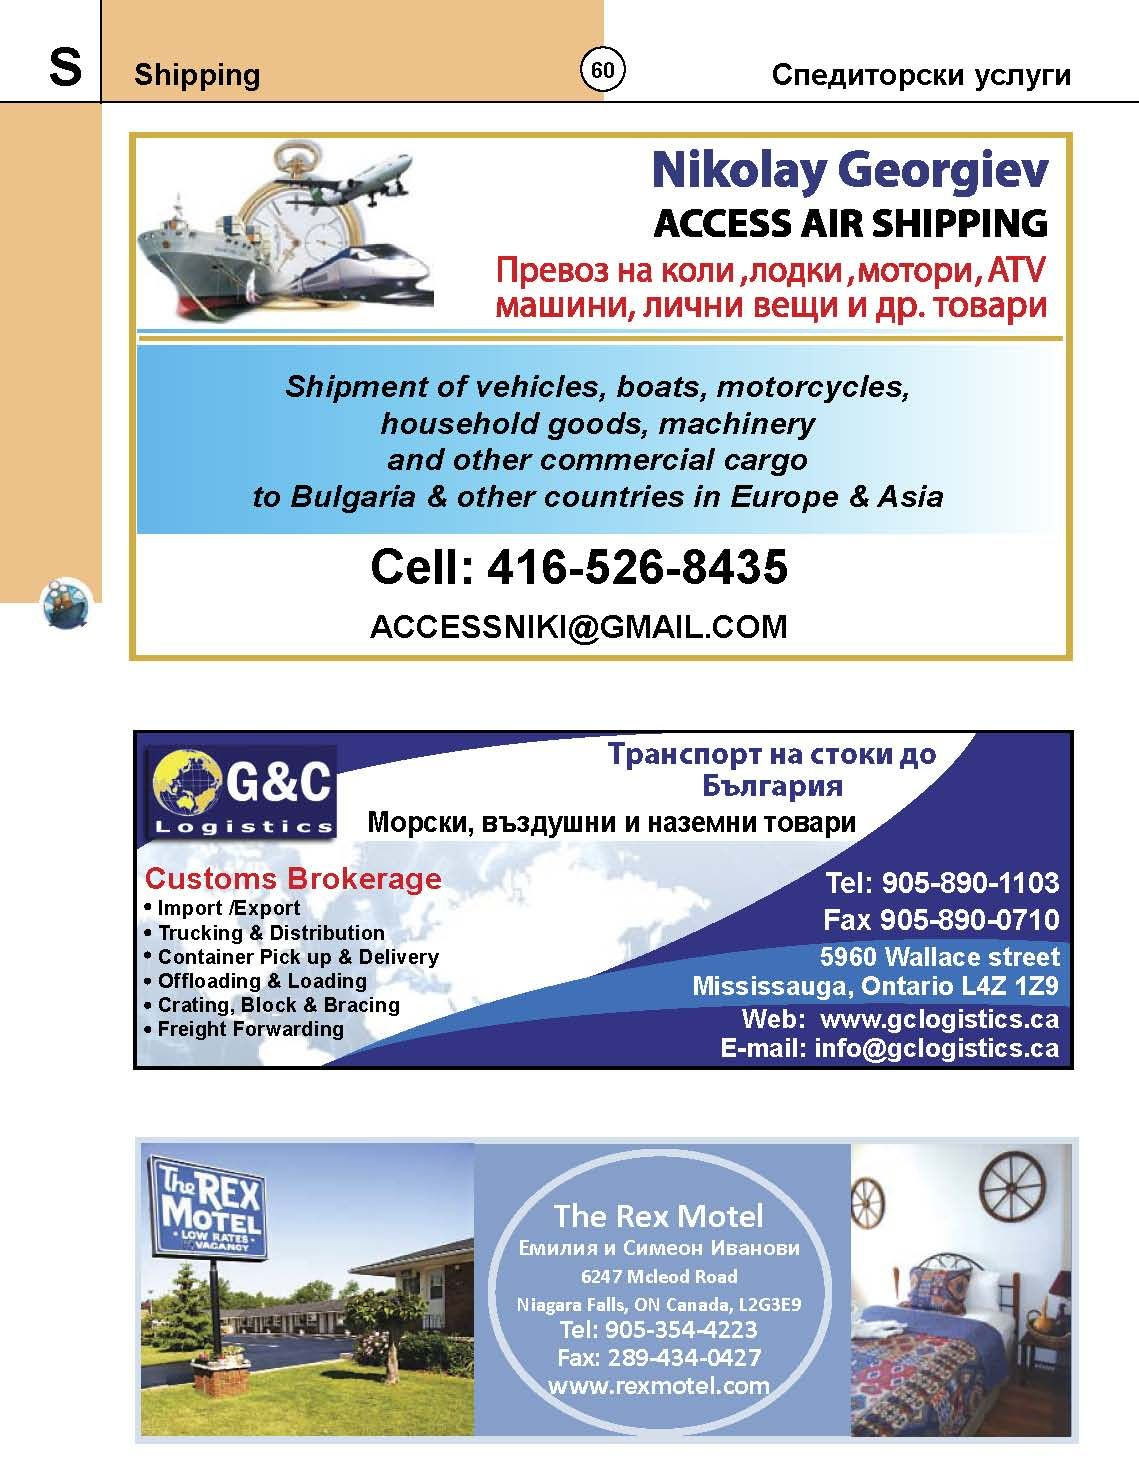 Shipping services for Bulgarians in Canada | Bulgarian